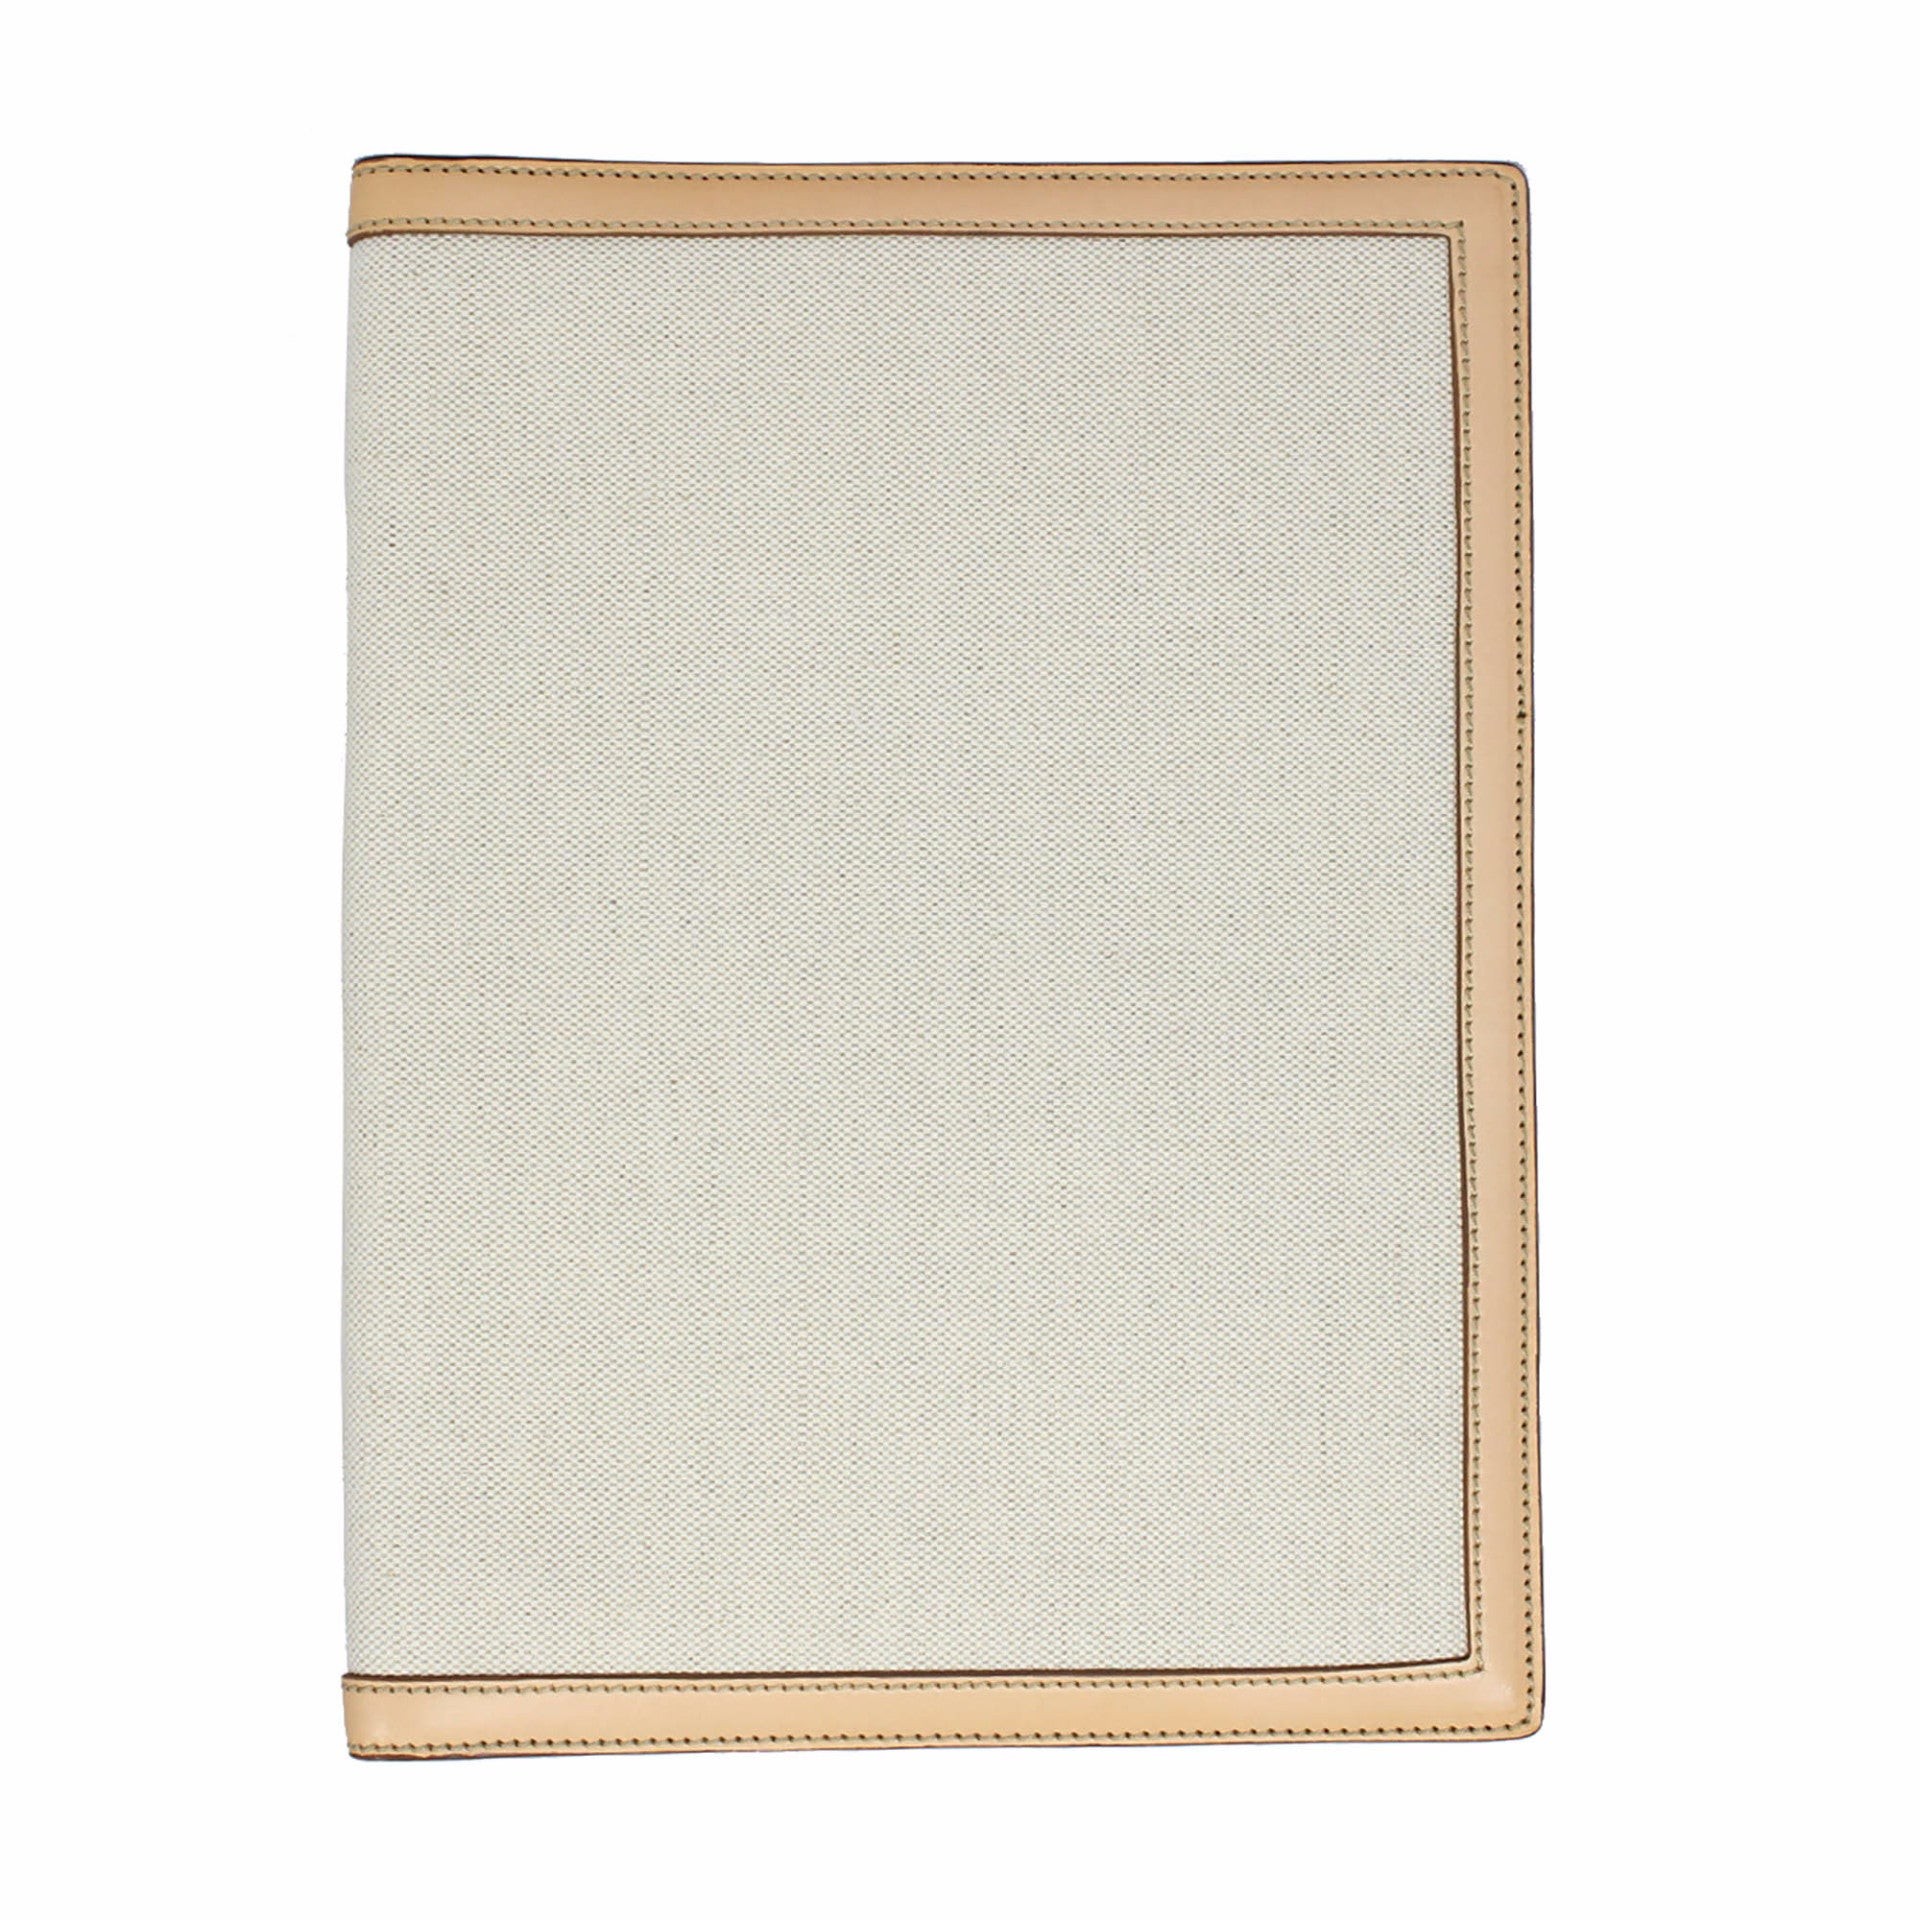 Bally Roma Canvas Document Holder